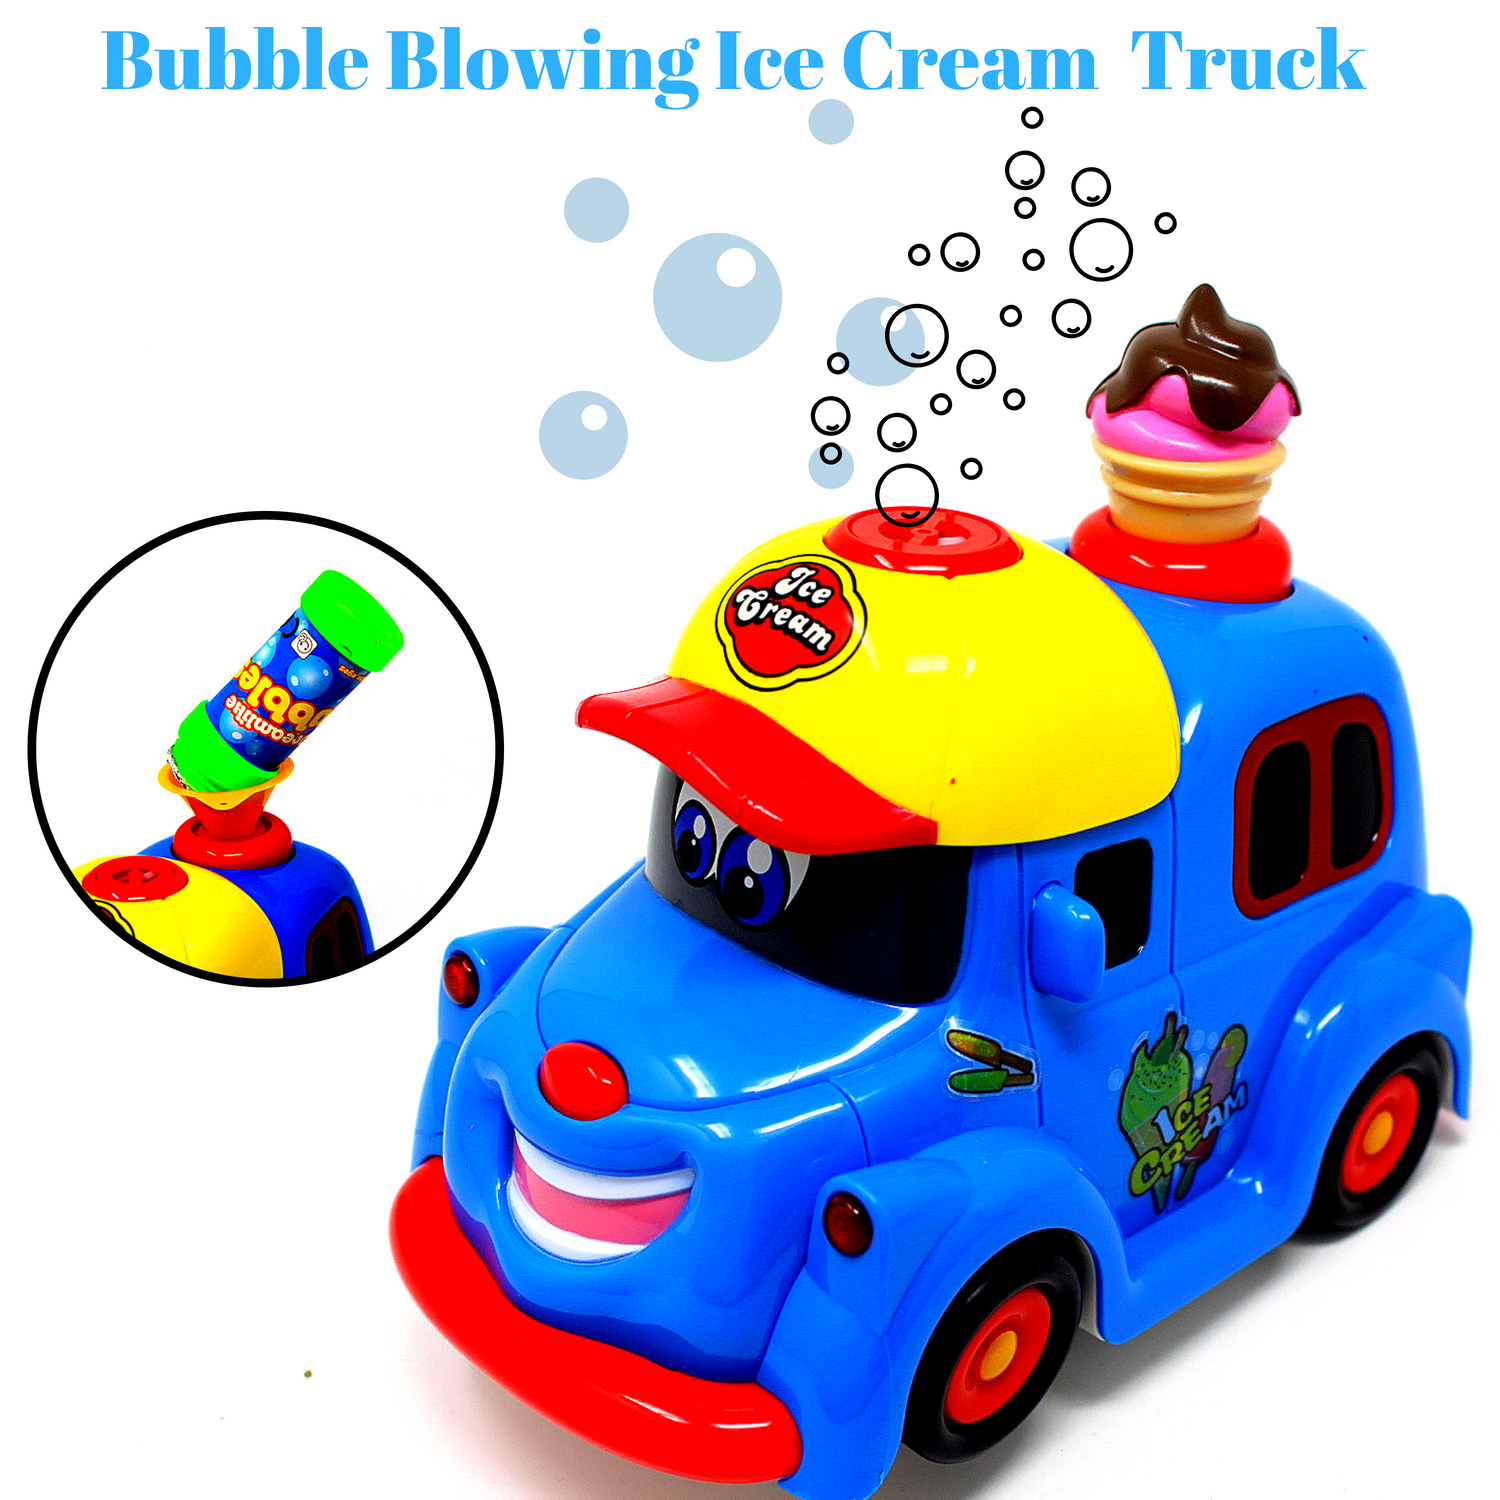 Bubble Blowing Ice Cream Truck Toy for kids toddlers Battery Operated Toy Ice Cream Truck Car w/ Lights & Sound Music-Comes with Bubbles